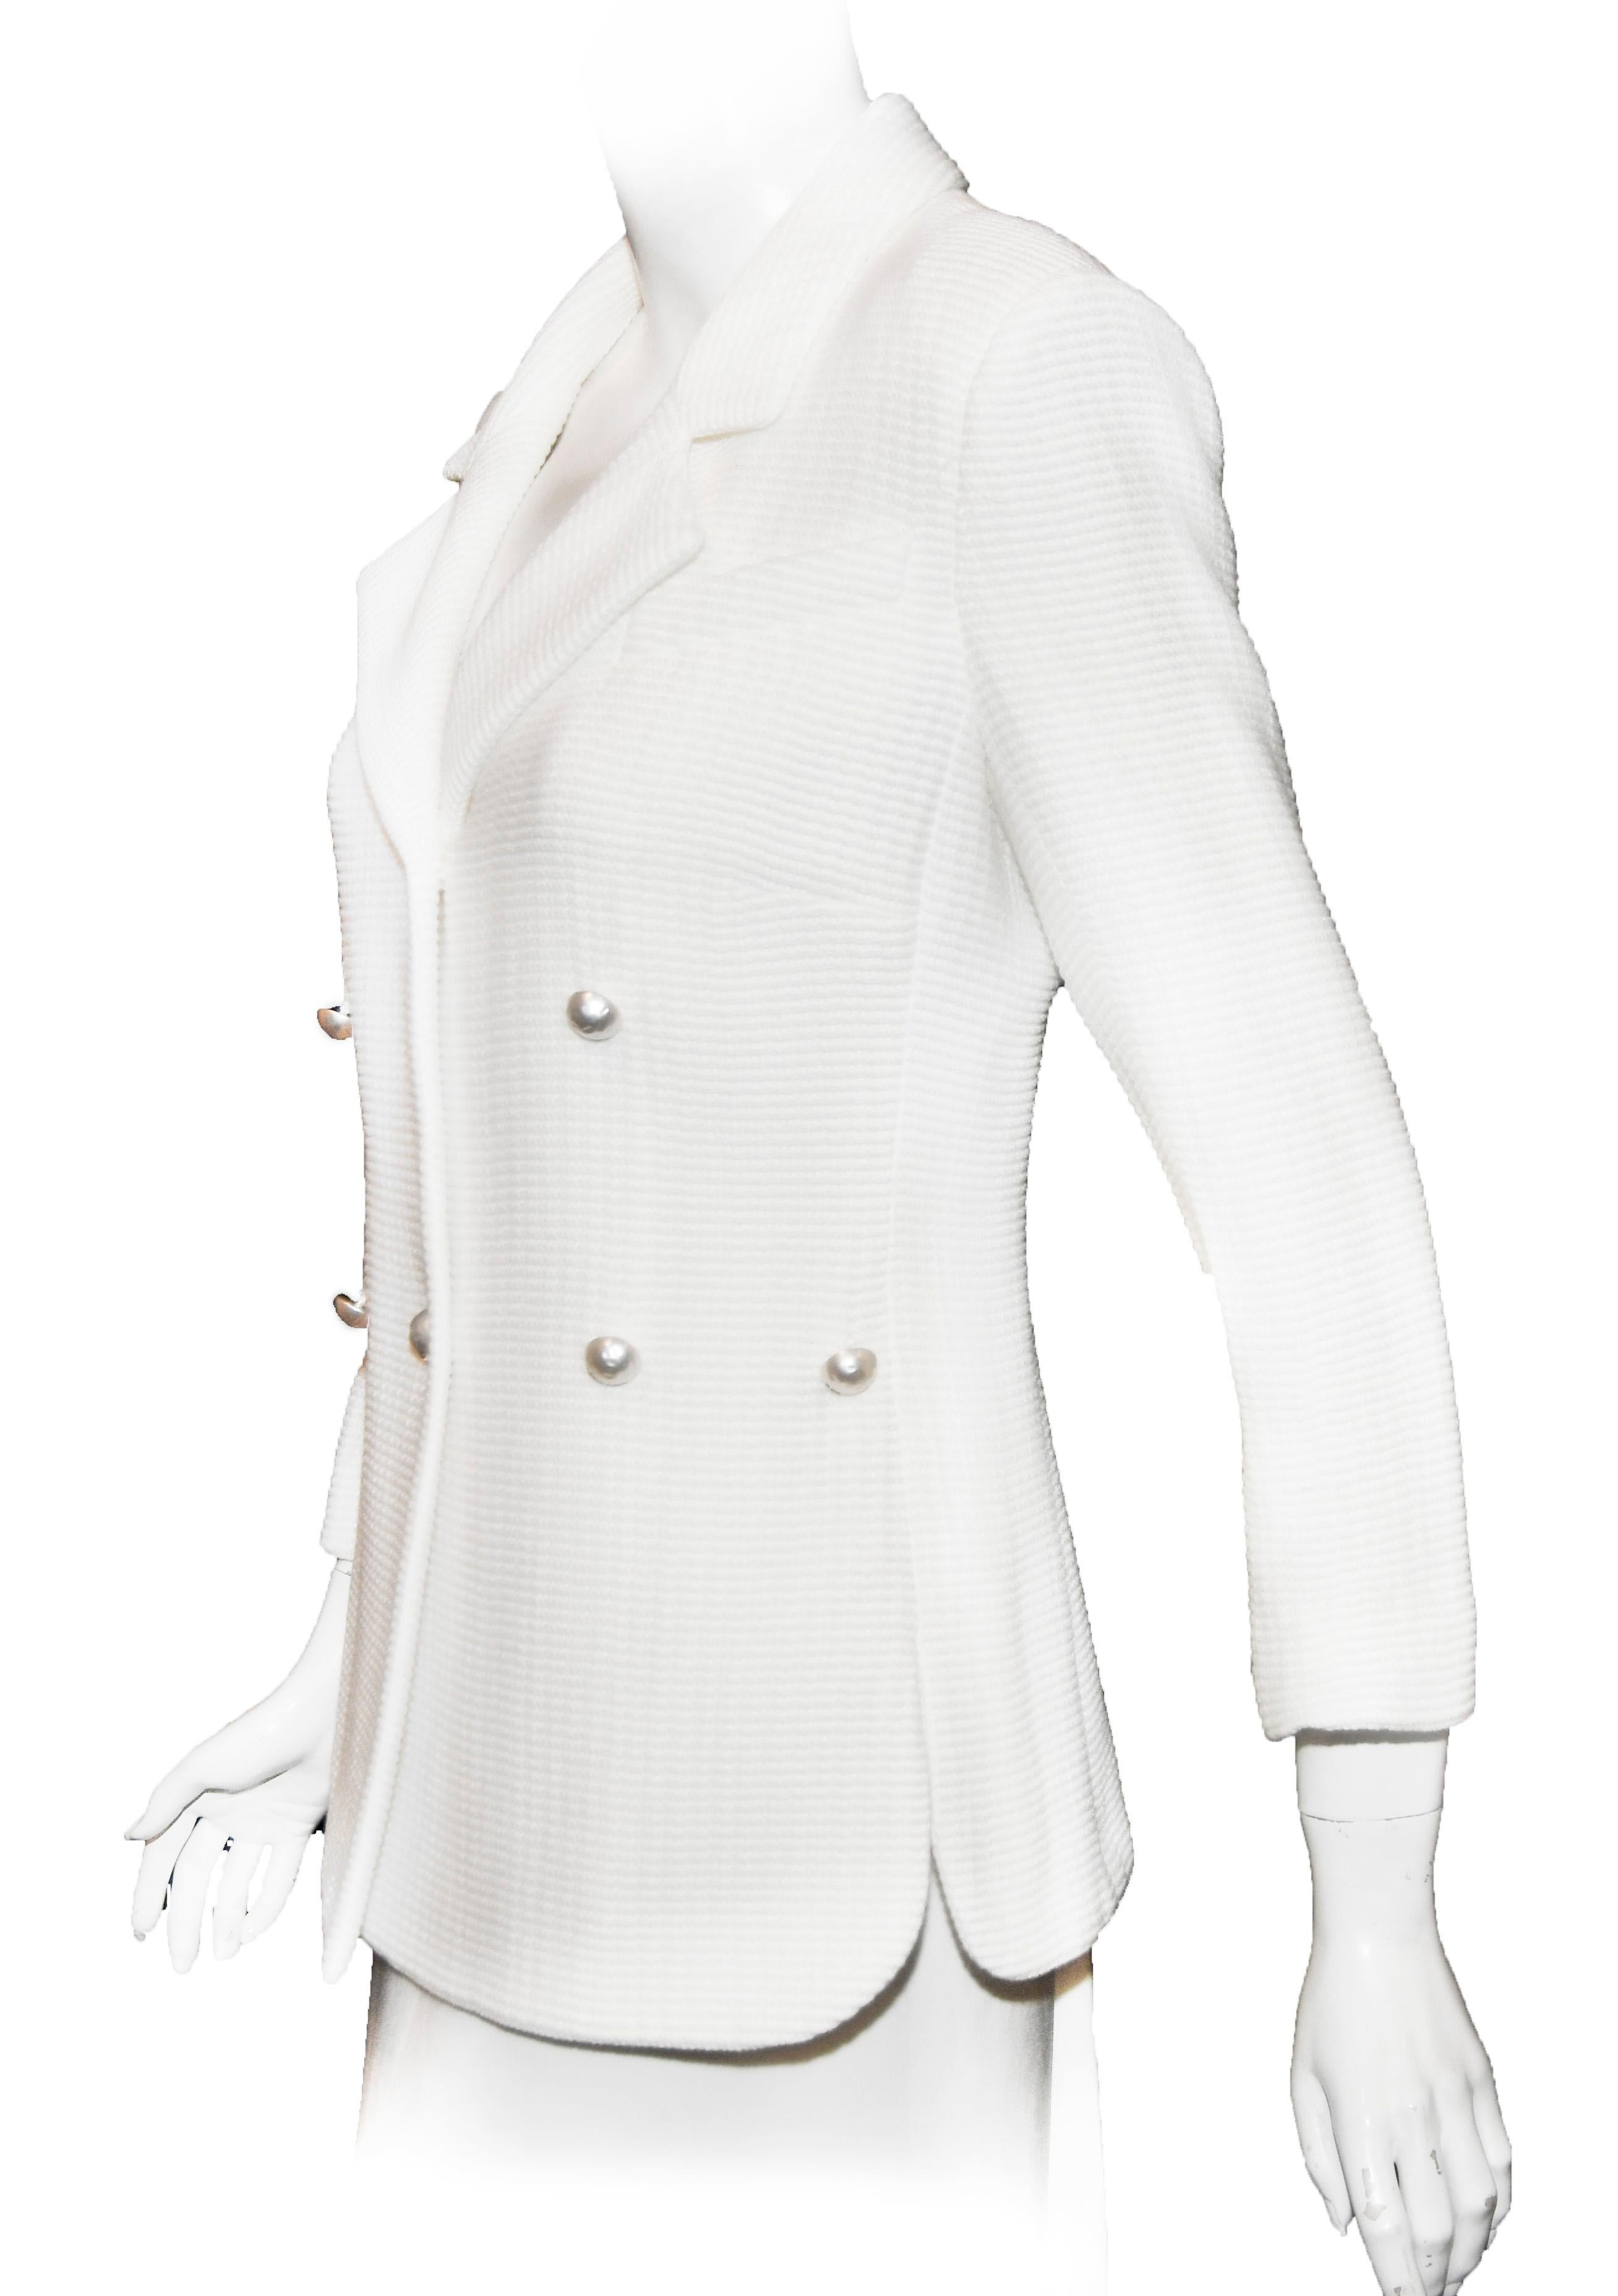 b3de2f1f54e99 Chanel White Double Breasted Waffled Jacket W  Faux Pearl Buttons at 1stdibs